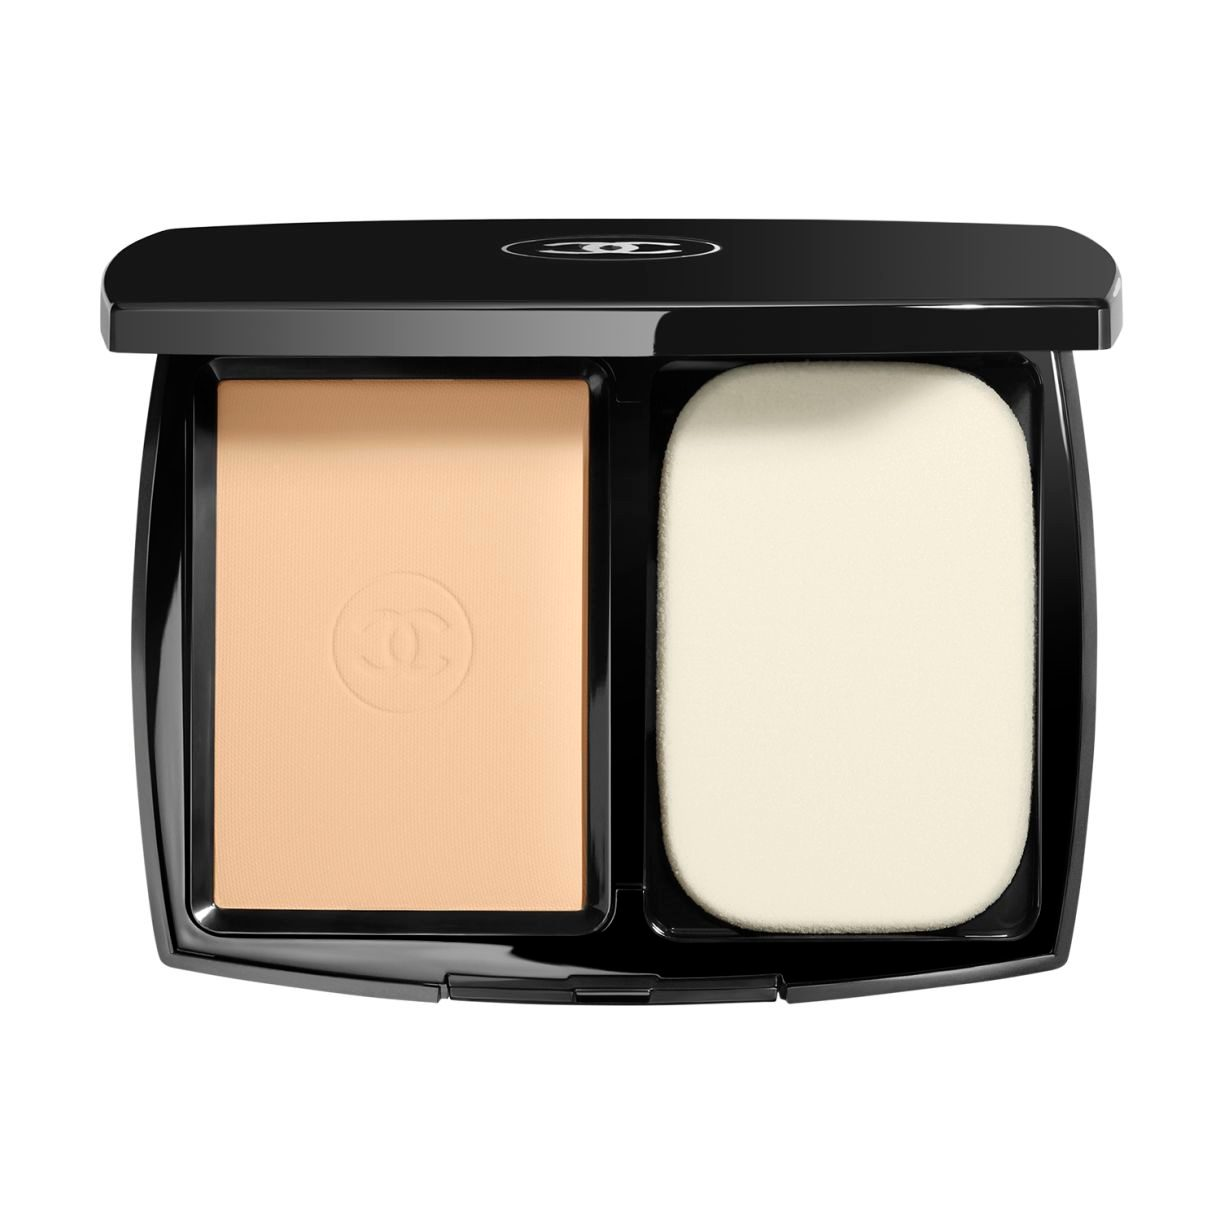 LE TEINT ULTRA TENUE ULTRAWEAR FLAWLESS COMPACT FOUNDATION